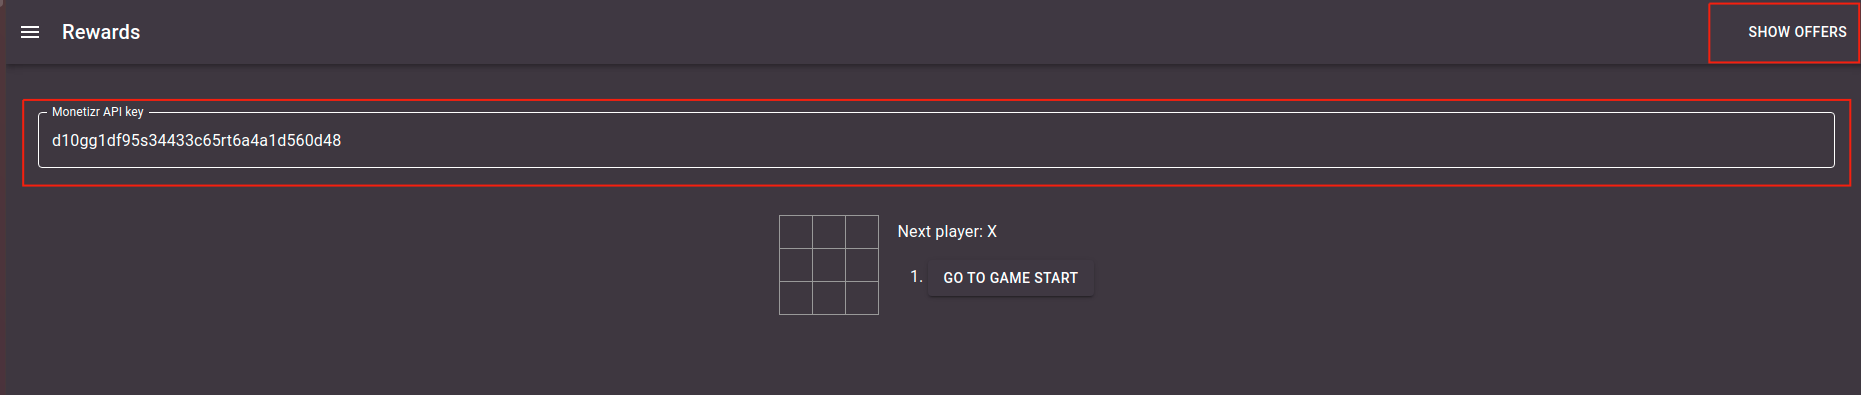 Tic Tac Toe game. Copy your API key and click on Show Offers